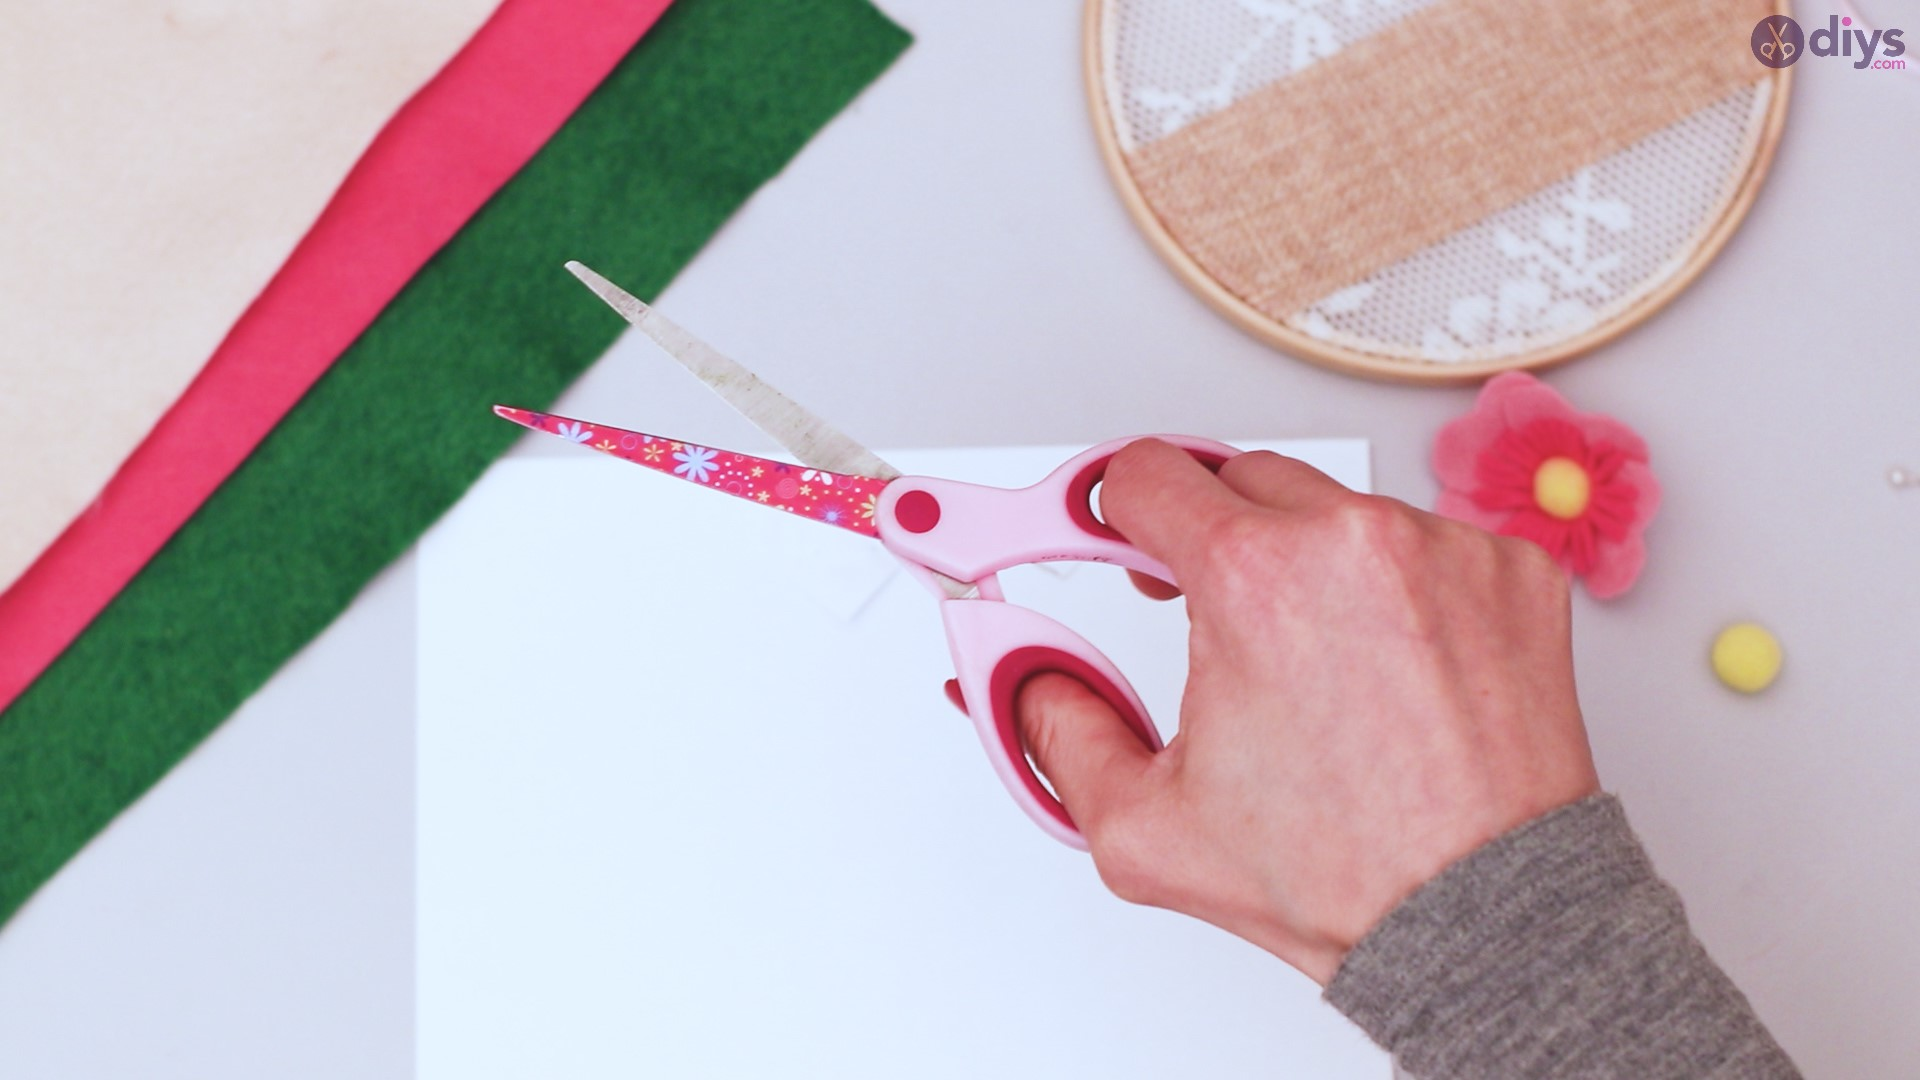 Diy embroidery hoop wall decor tutorial step by step (31)